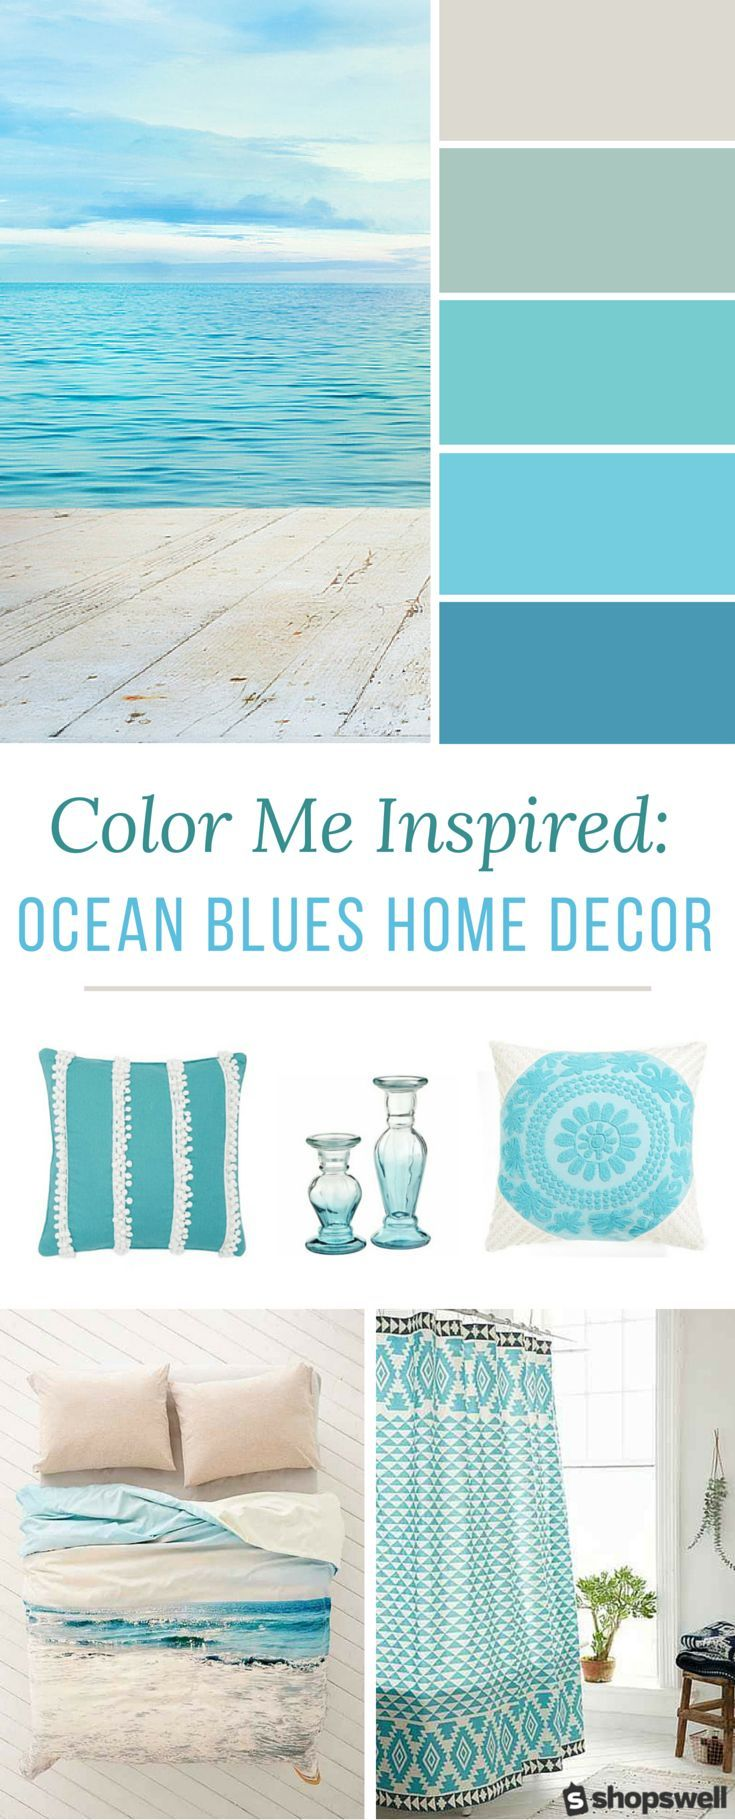 Blue ocean tones are the inspiration behind this summer home decor collection. Decorate your beach house or simply give your living space a warm-weather makeover.